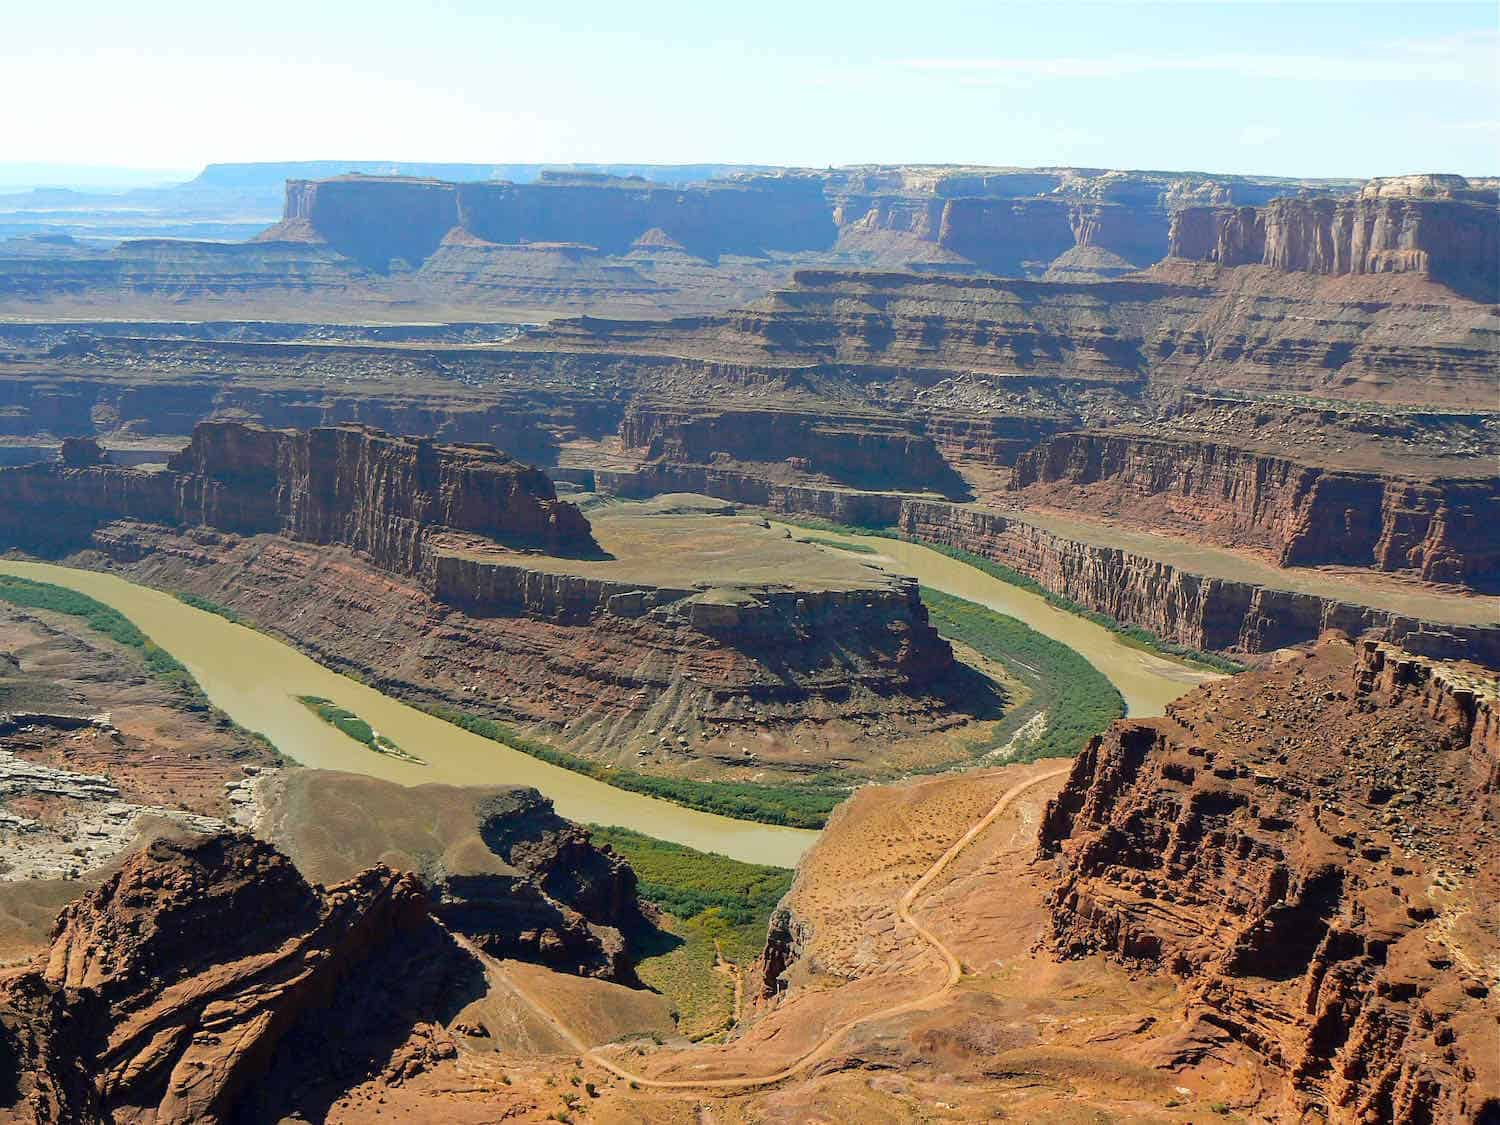 Explore Dead Horse Point State Park on a Scenic Drive